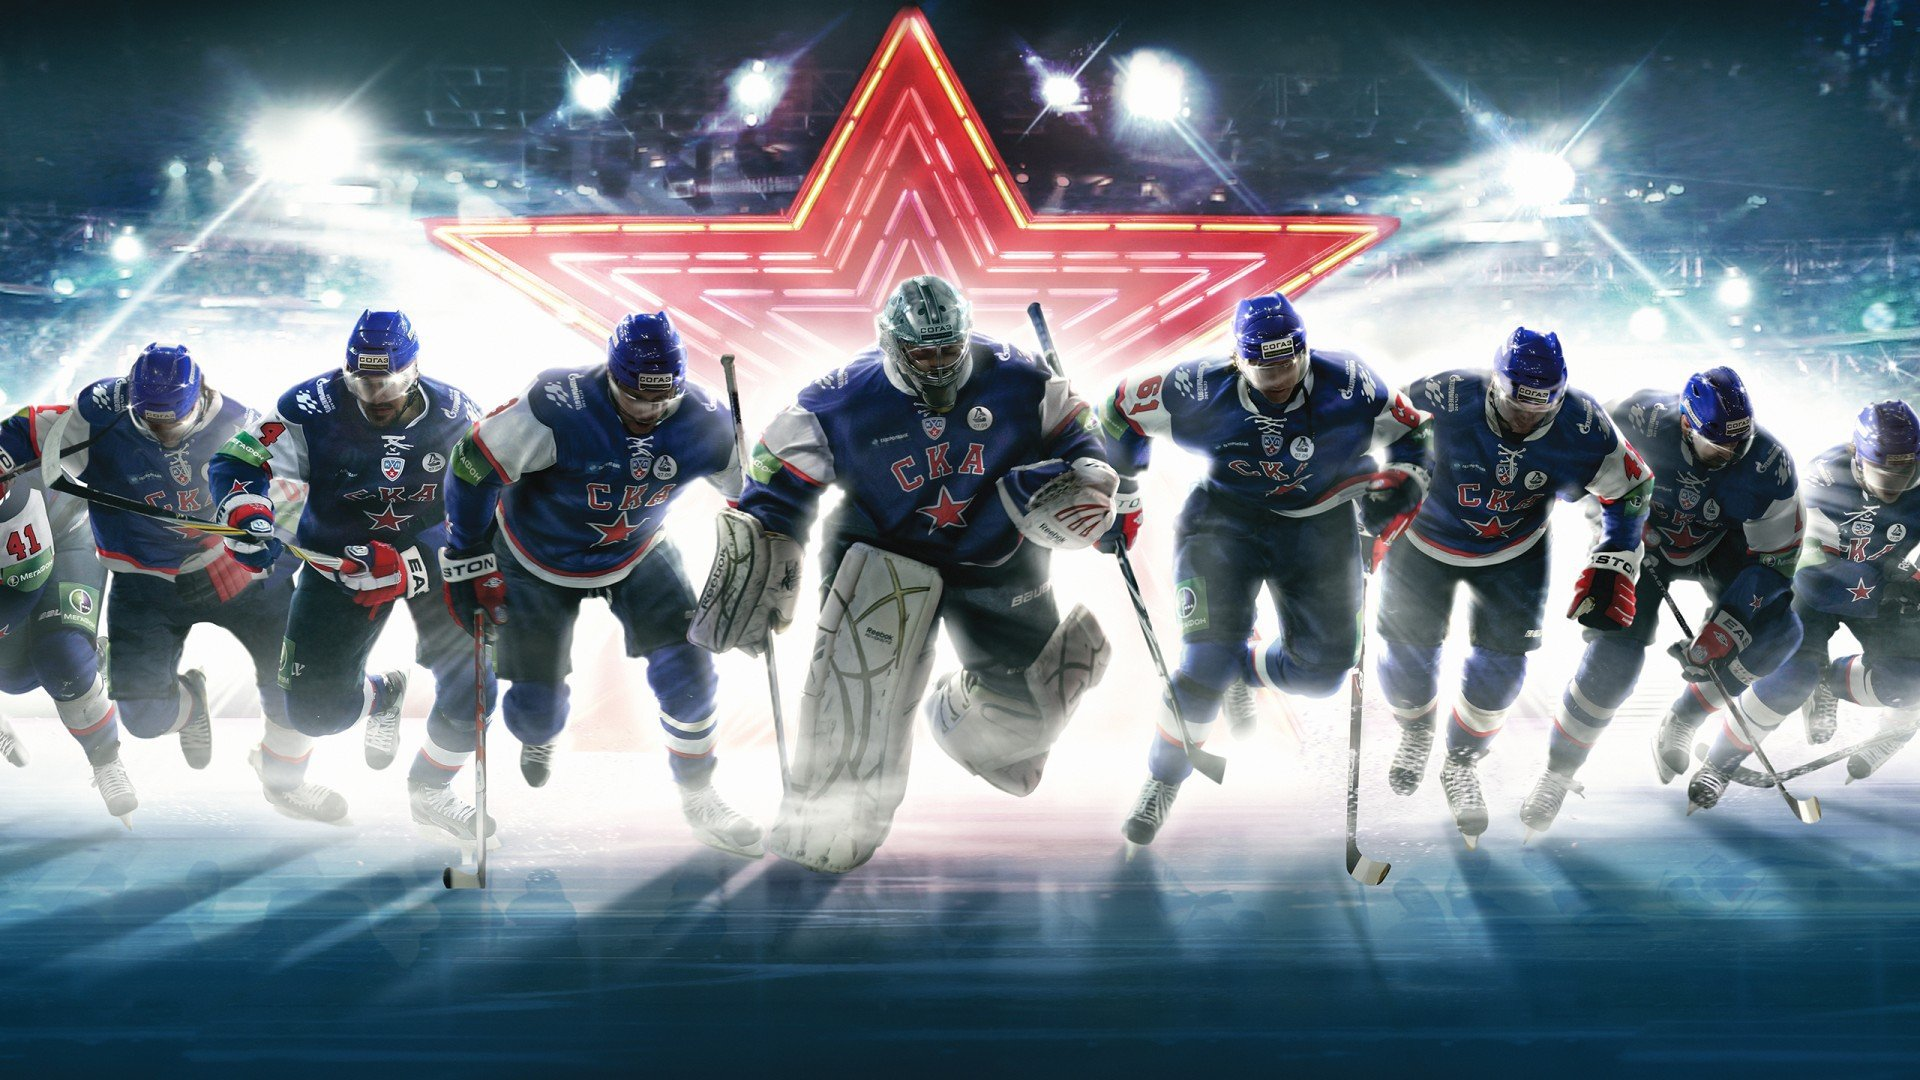 Hockey team wallpapers and images   wallpapers pictures photos 1920x1080